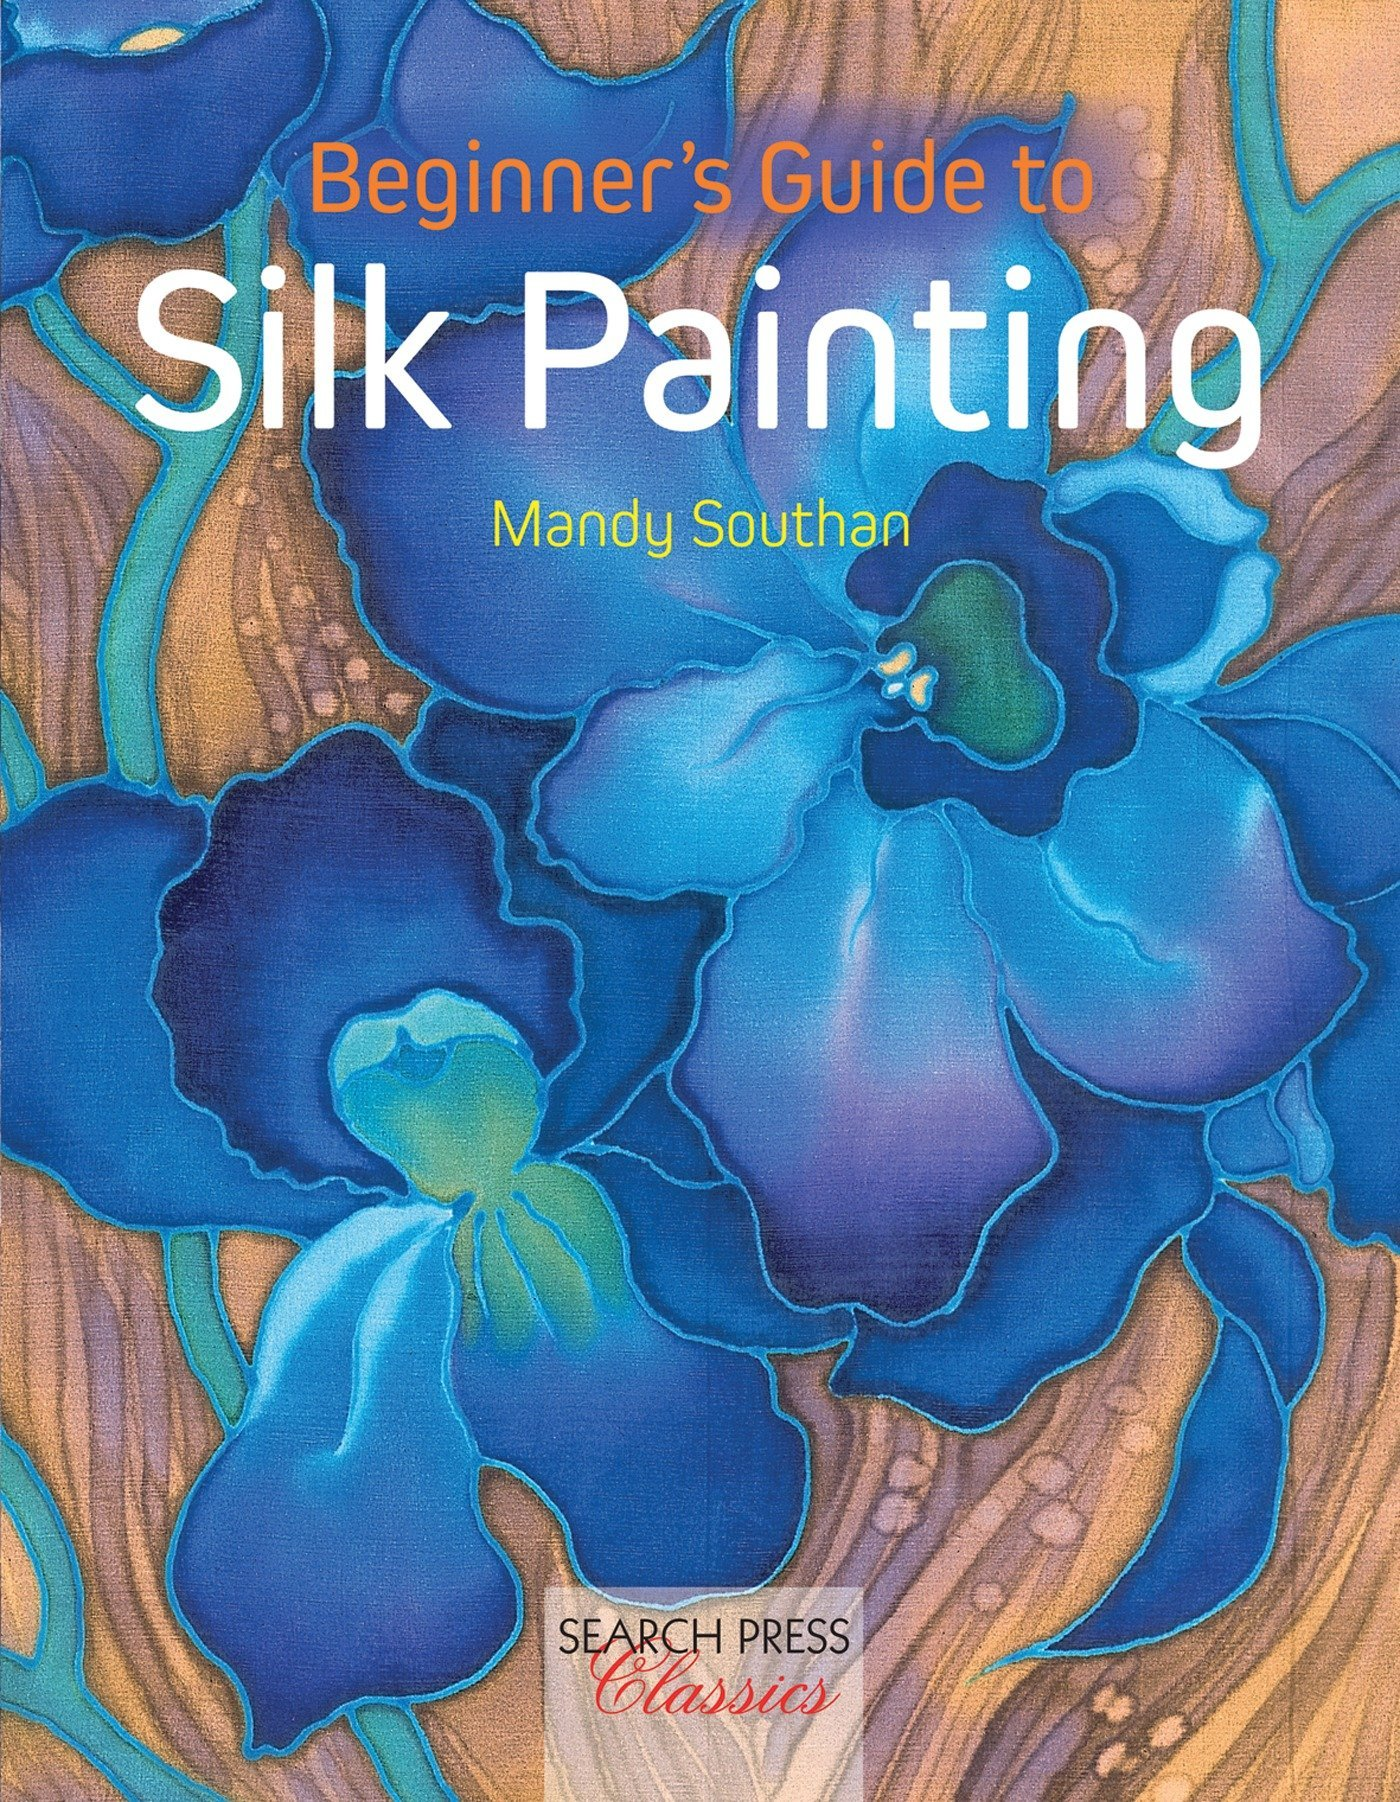 Beginner's Guide to Silk Painting (Search Press Classics) by Search Press (Image #1)